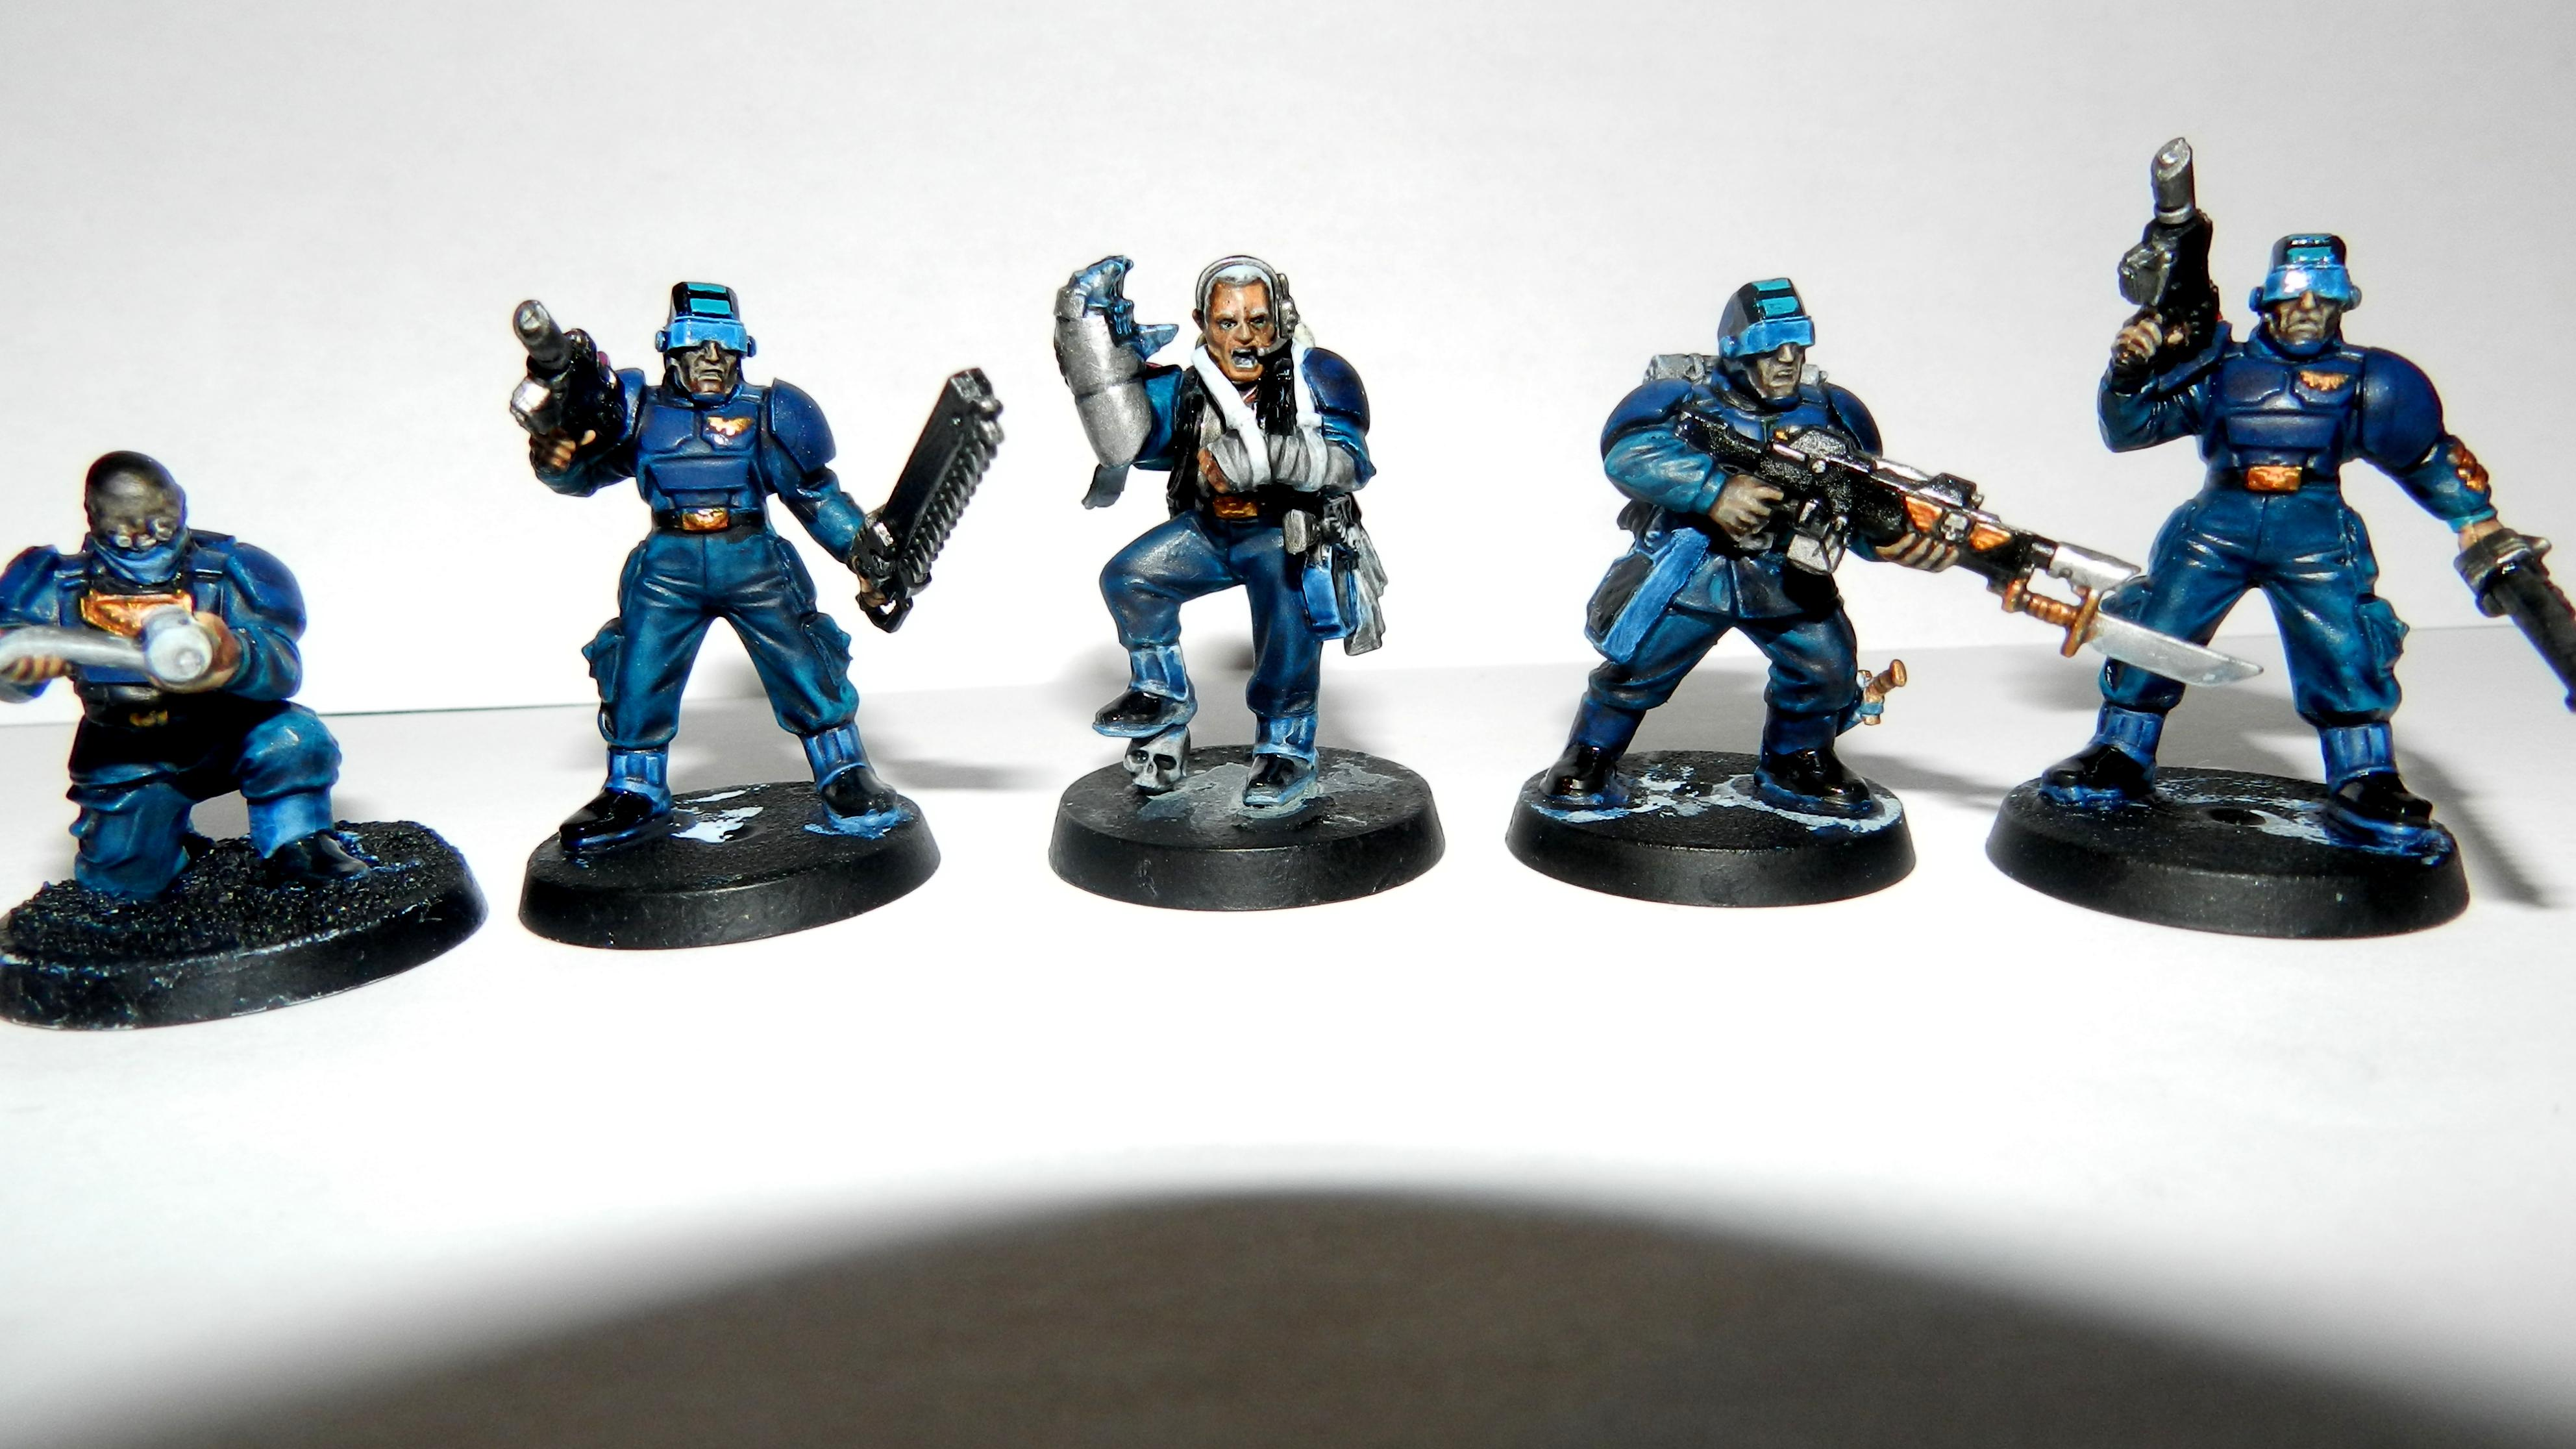 Adeptus Arbites, Cadians, Ccs, Command Squad, Commander, Company Command Squad, Conversion, Count As, Drop Troop, Elysian, Elysians, Gears Of War, Grenadier, Grenadiers, Guardsmen, Headquarters, Imperial Guard, Infantry, Junior Officer, Officer, Officers, Plasma Gun, Platoon, Power Fist, Seargant, Warhammer 40'000, Warhammer 40,000, Work In Progress